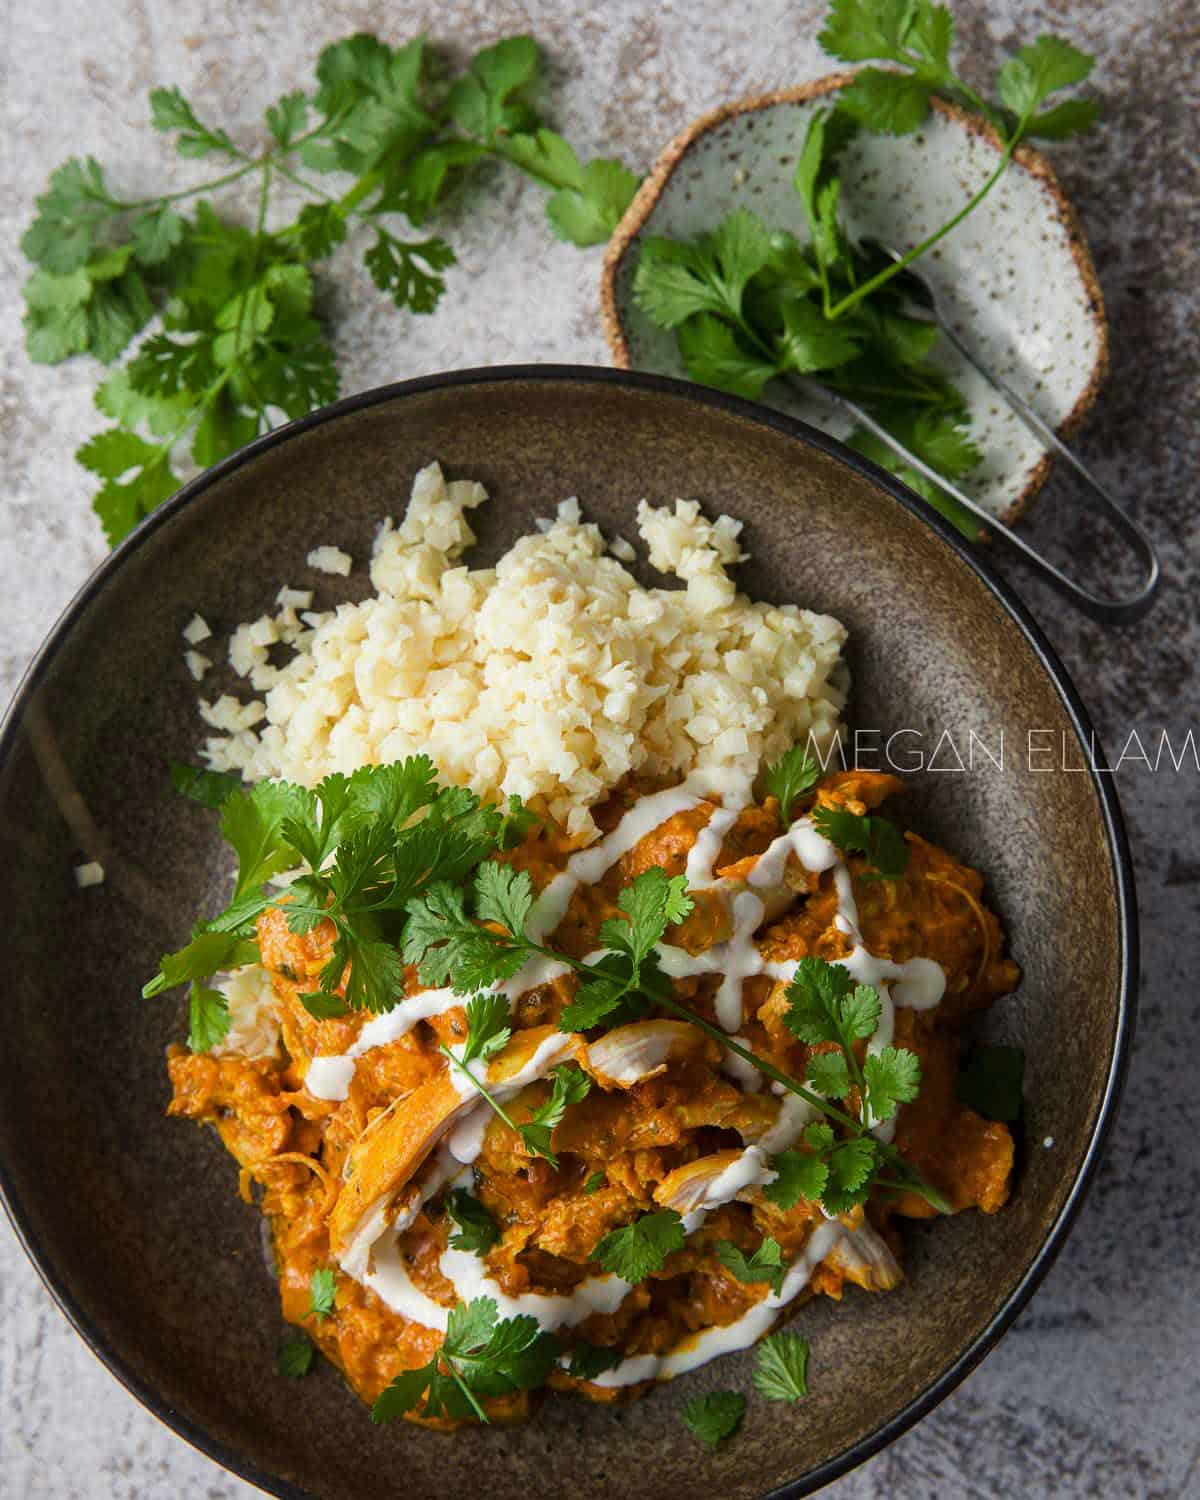 Brown bowl with butter chicken and rice in it.